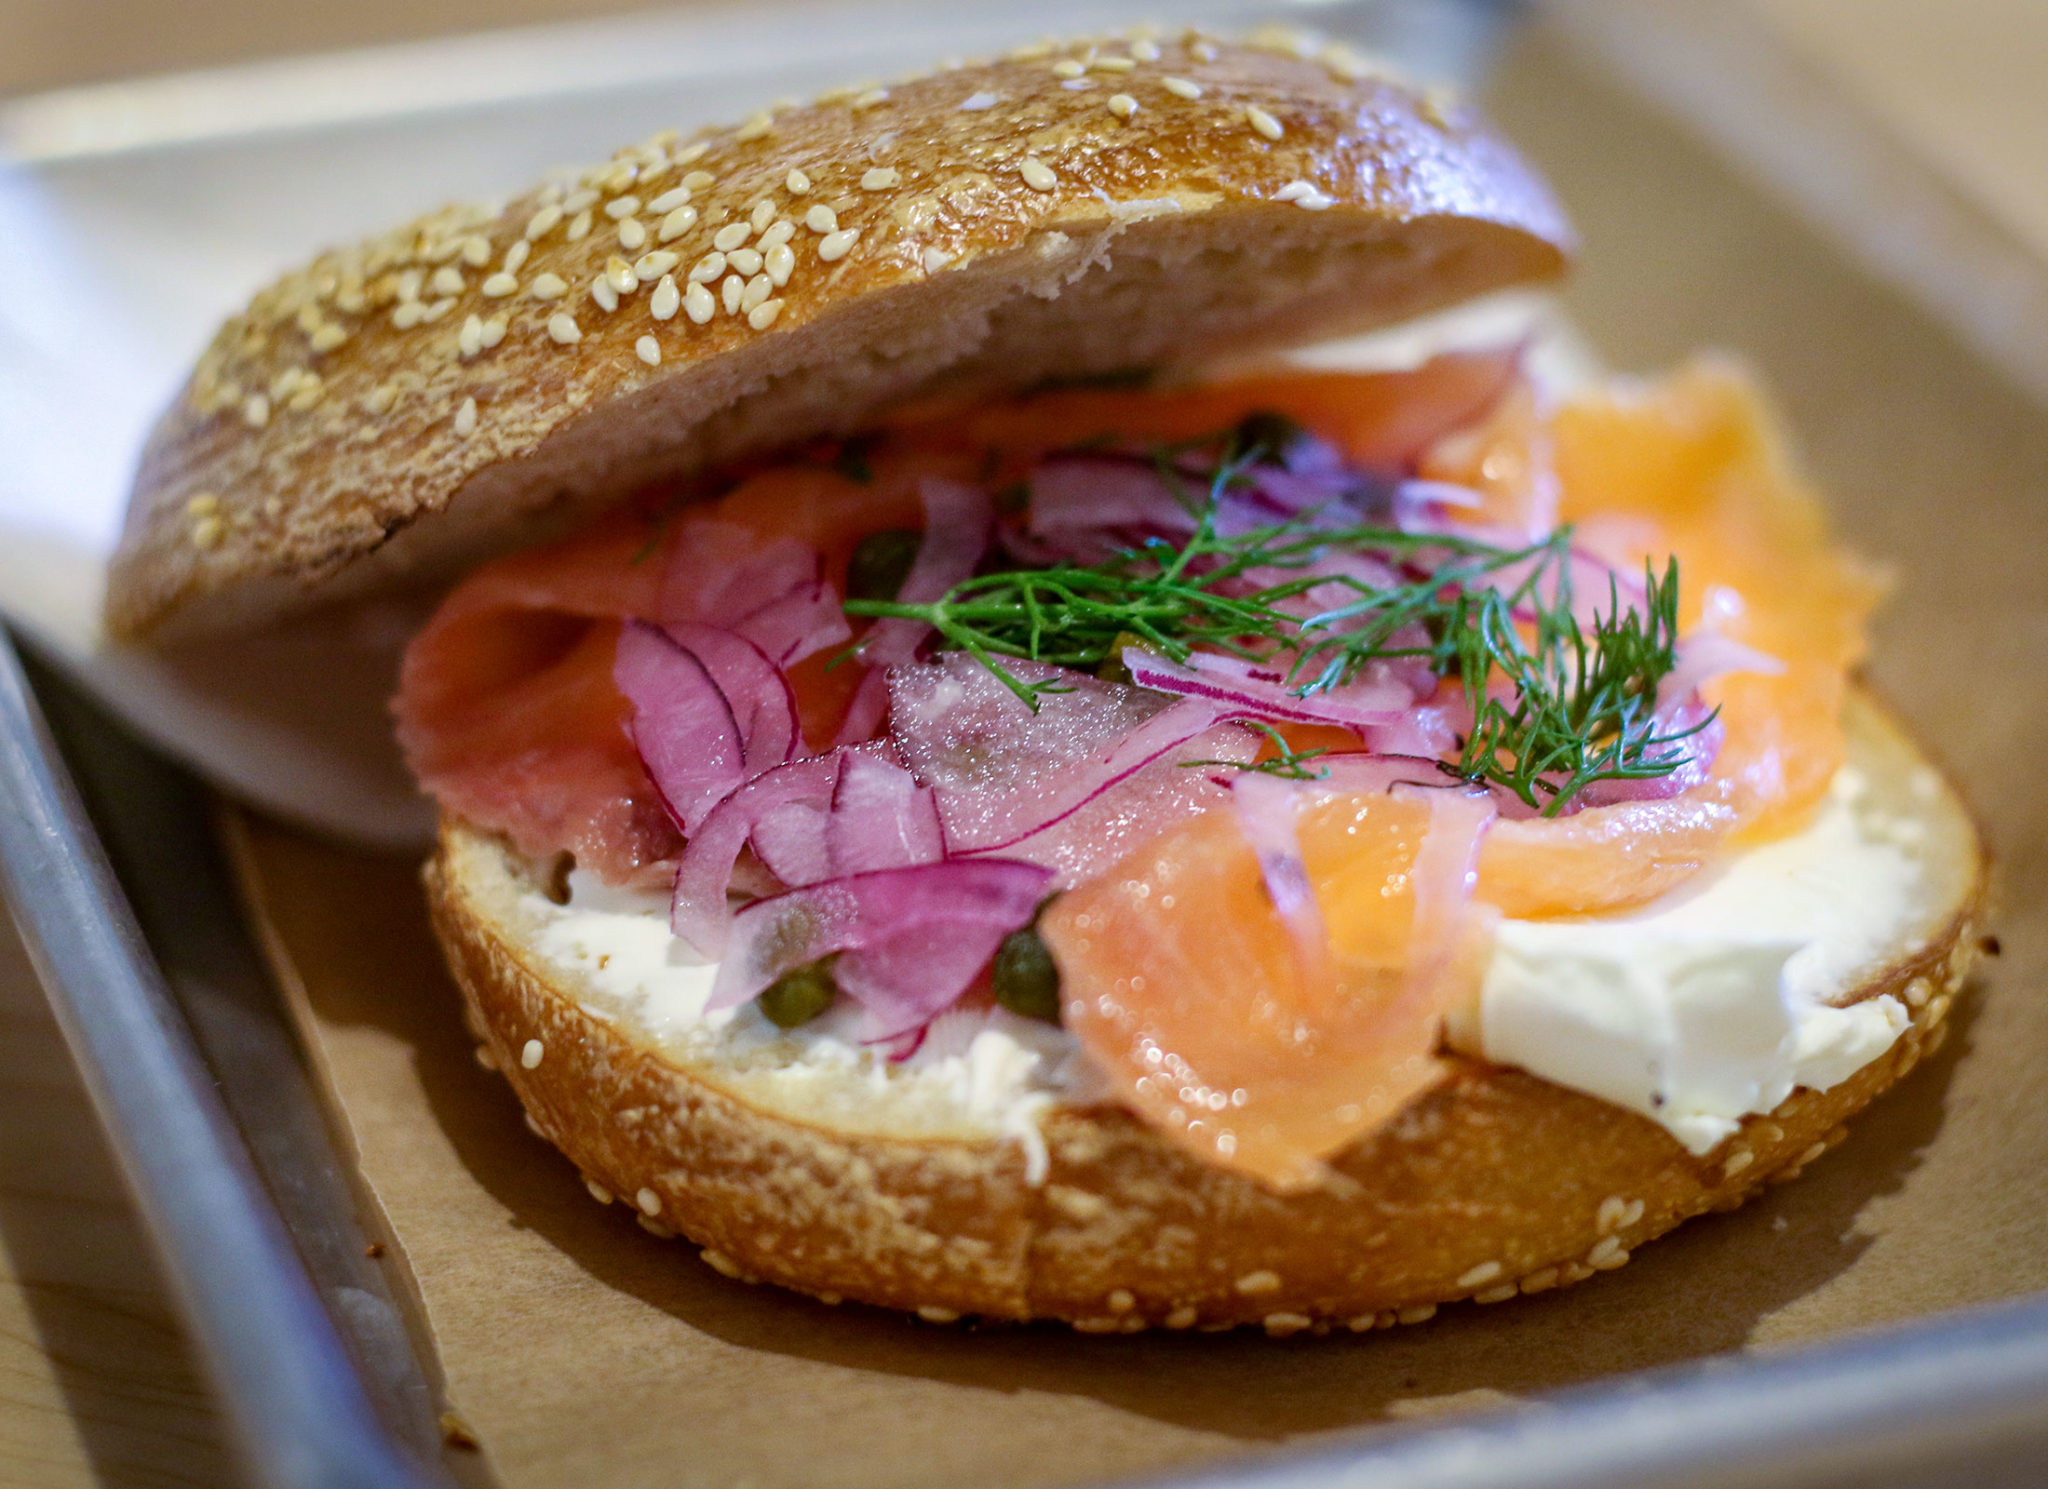 Lox and cream cheese sesame bagel at the Bagel Mill in Petaluma. Heather Irwin/PD